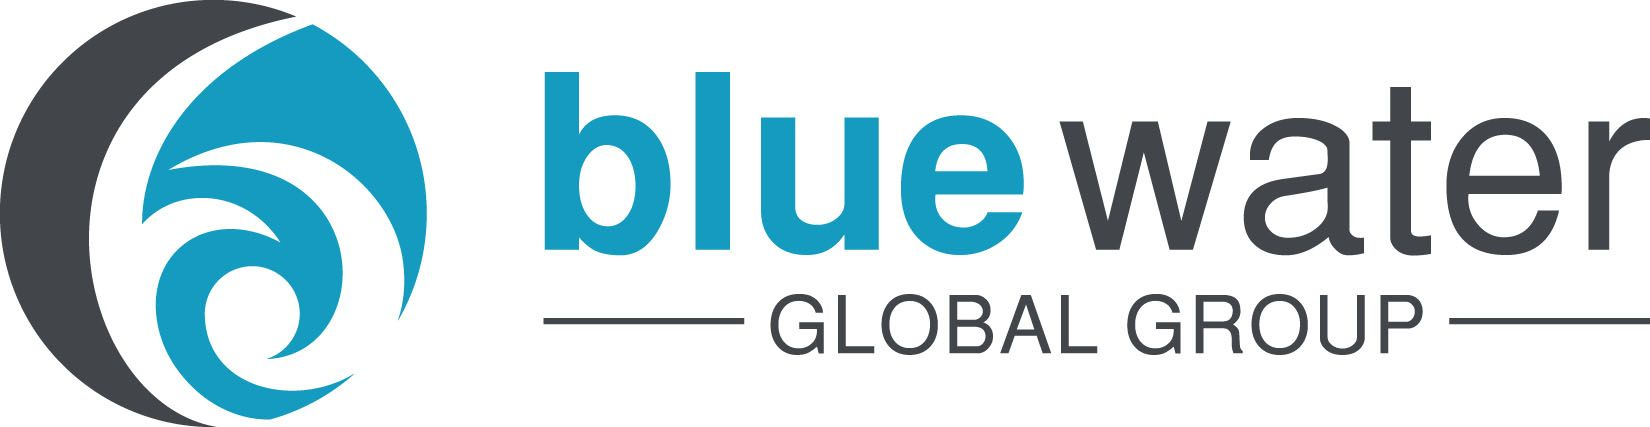 Blue Water Global Group logo